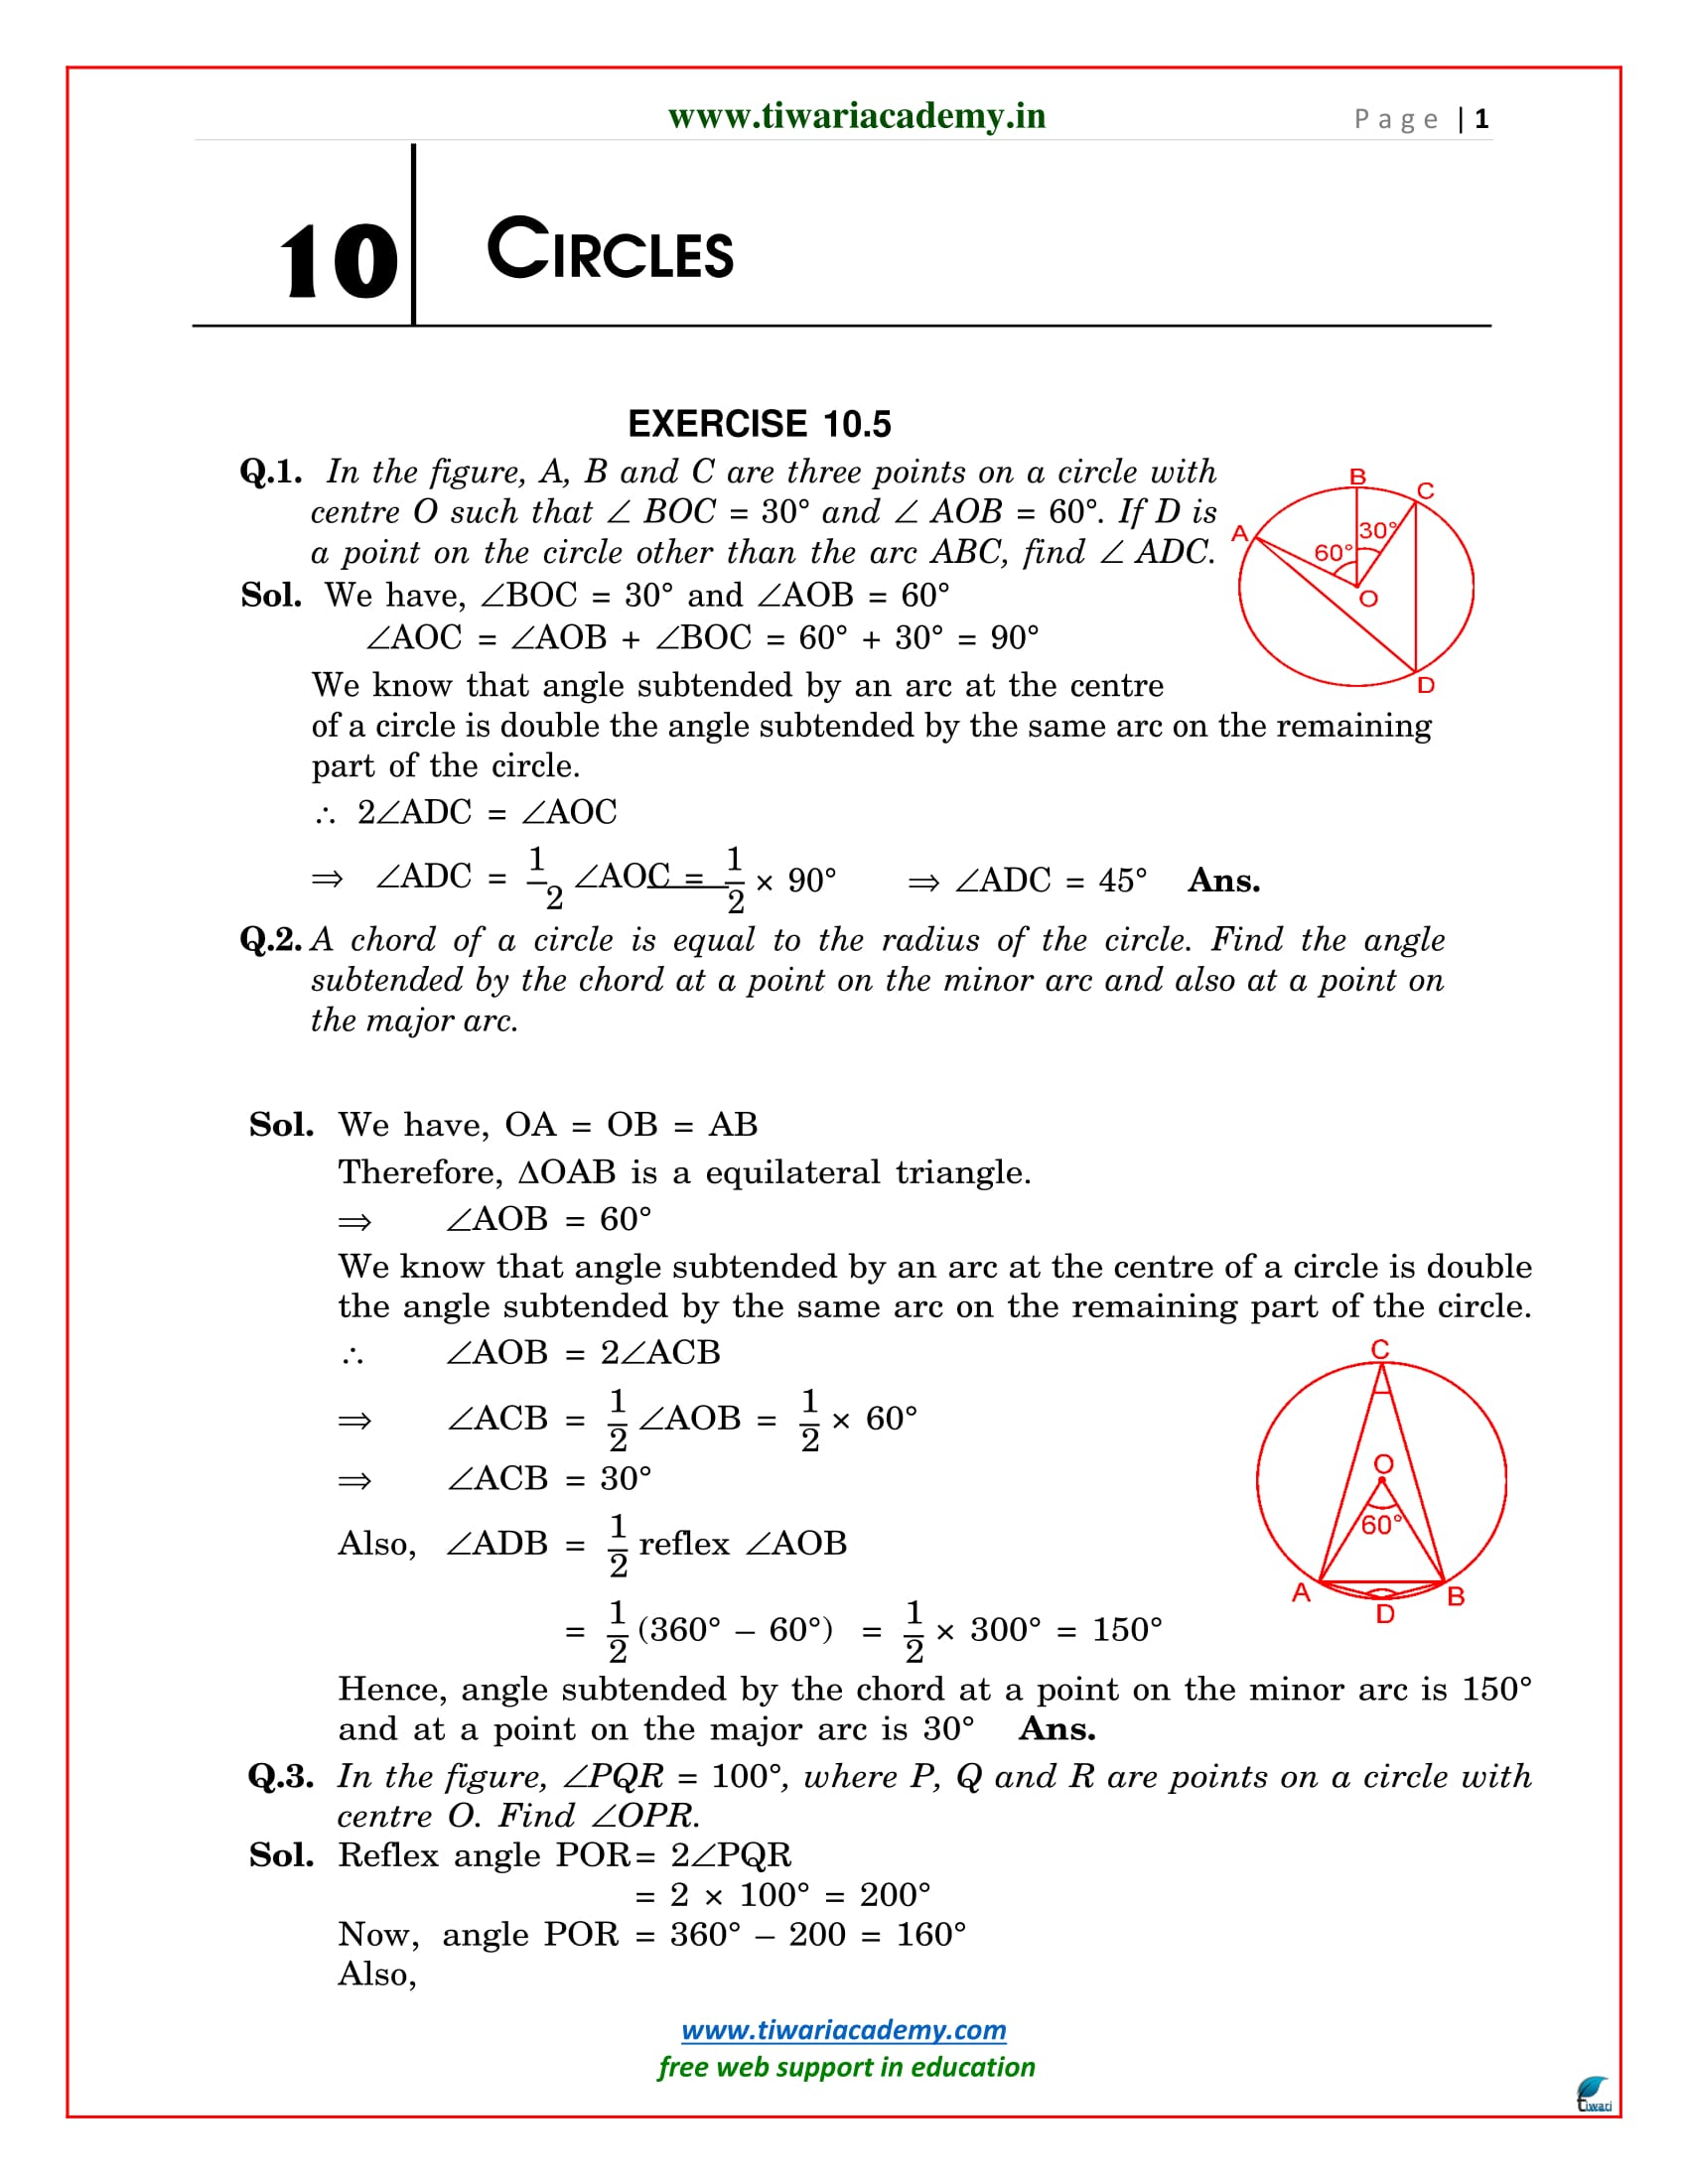 NCERT Solutions for Class 9 Maths Chapter 10 Exercise 10.5